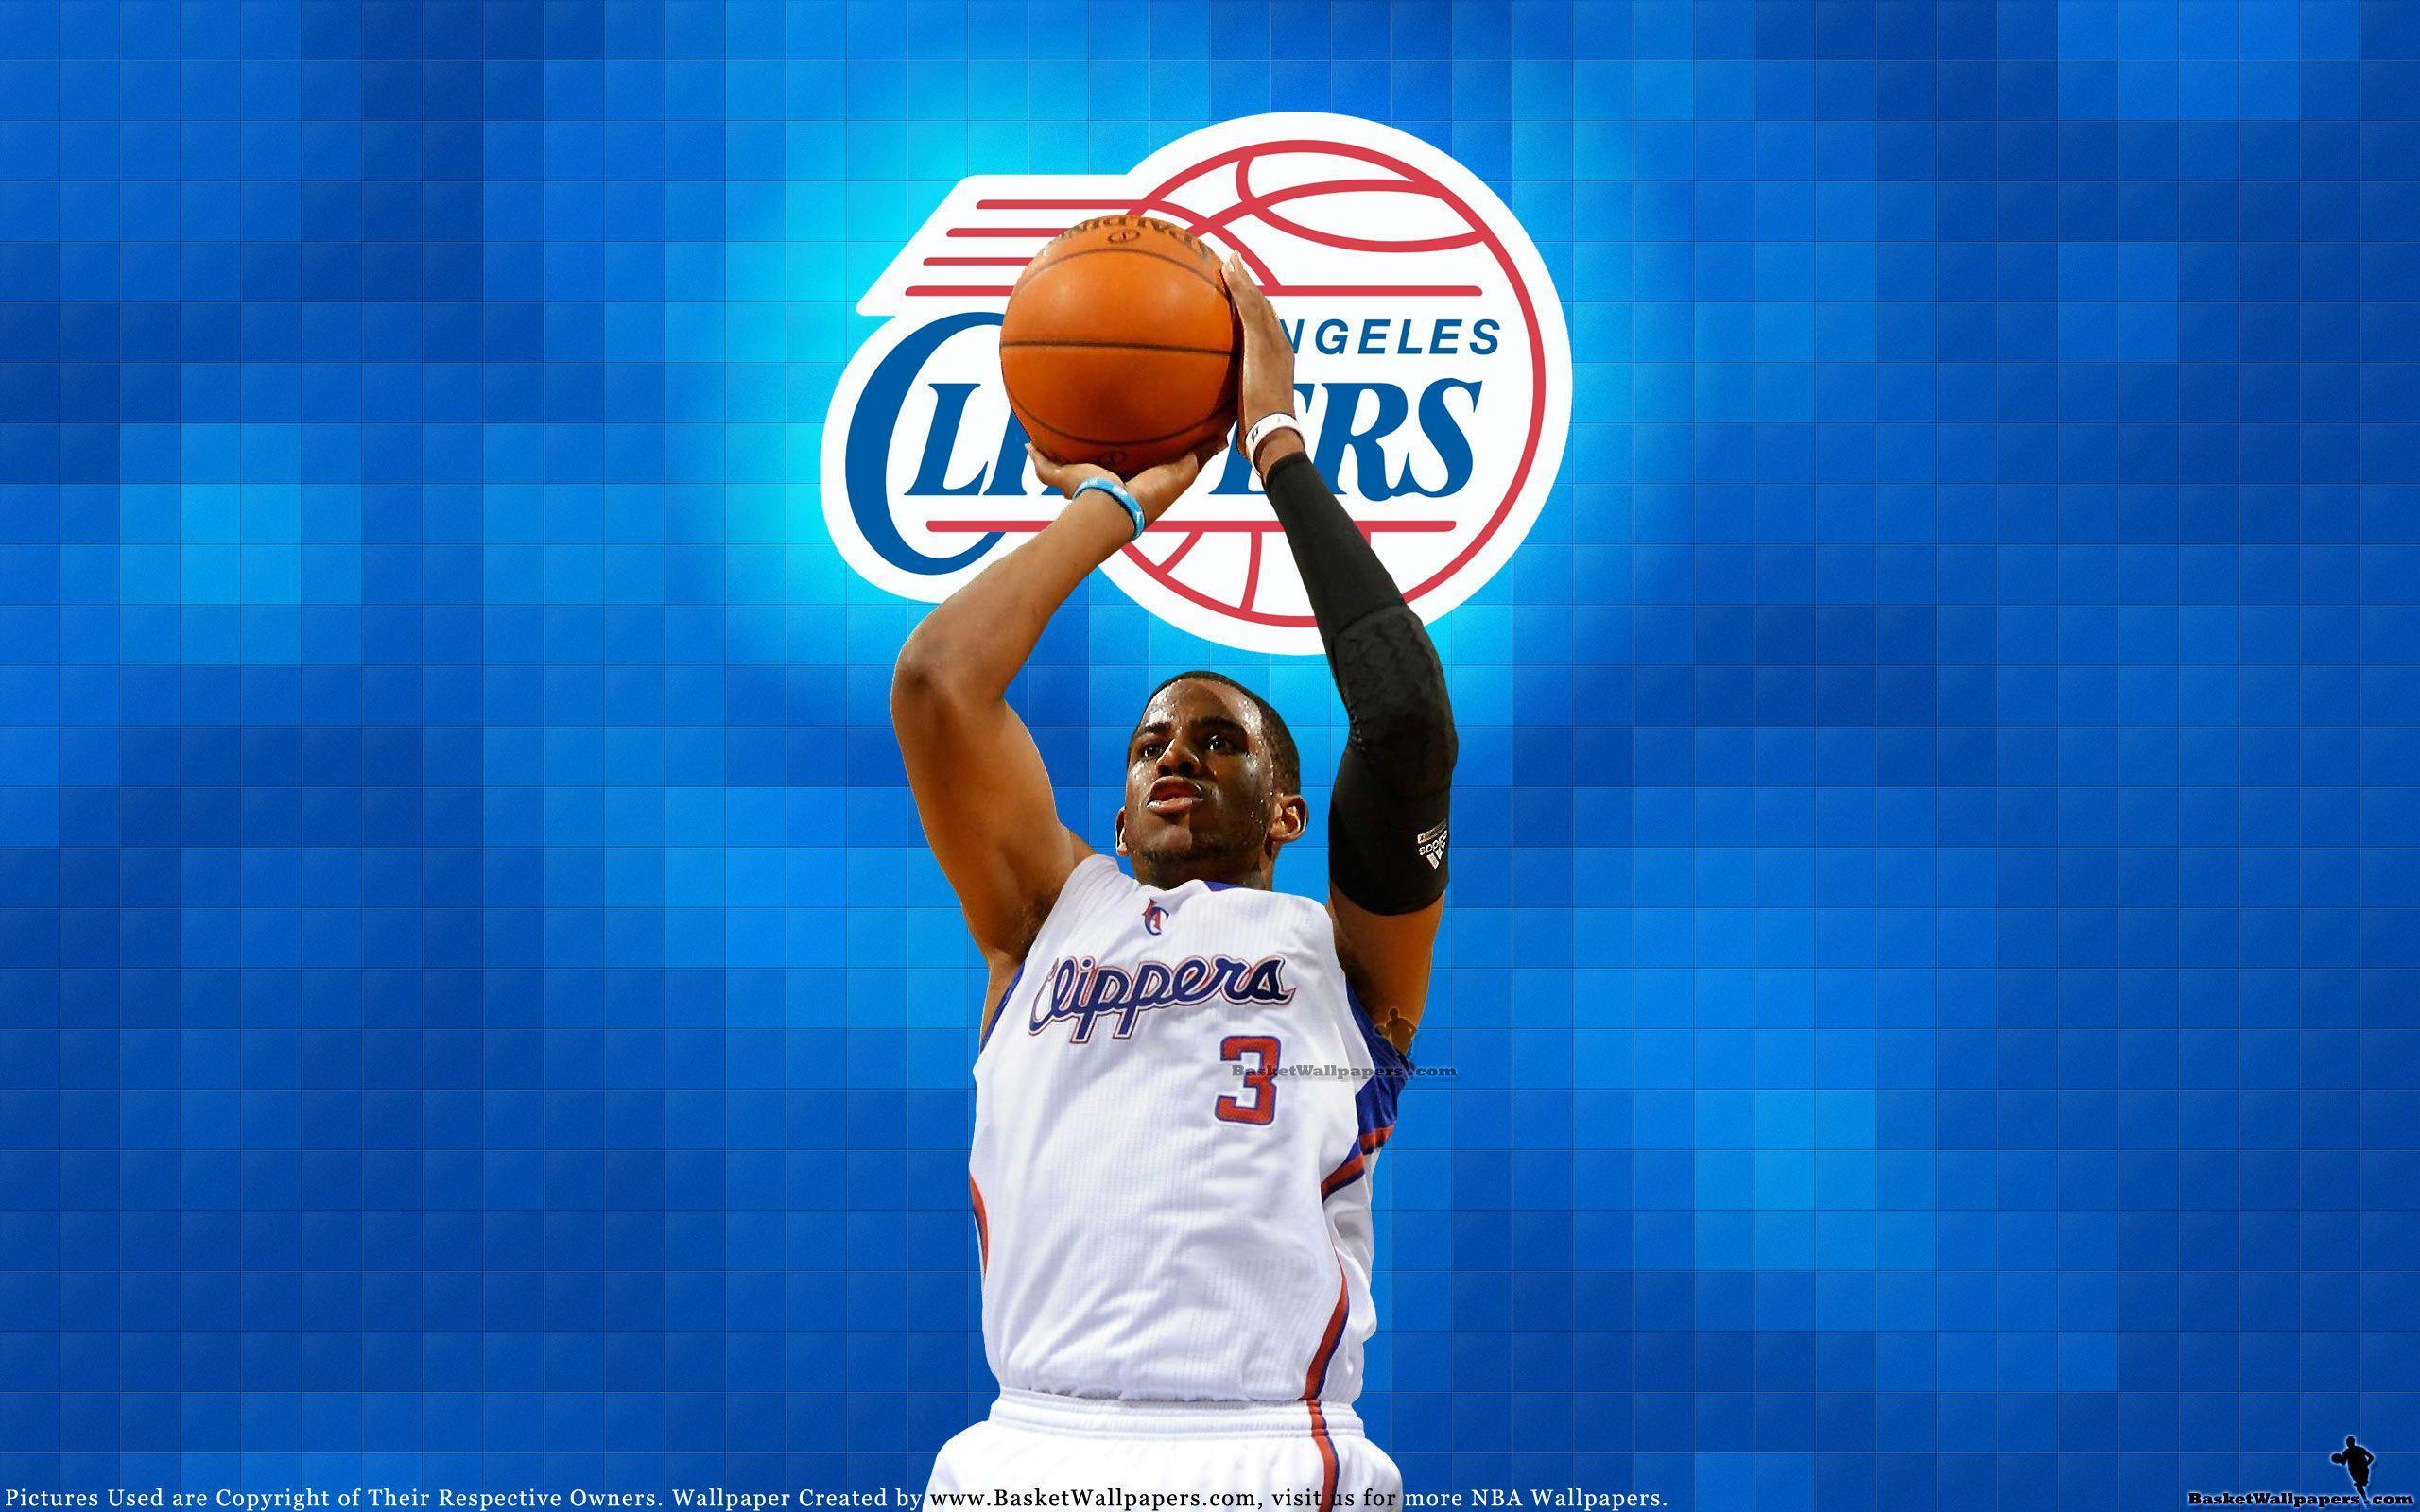 Los Angeles Clippers Wallpapers | Basketball Wallpapers at ...